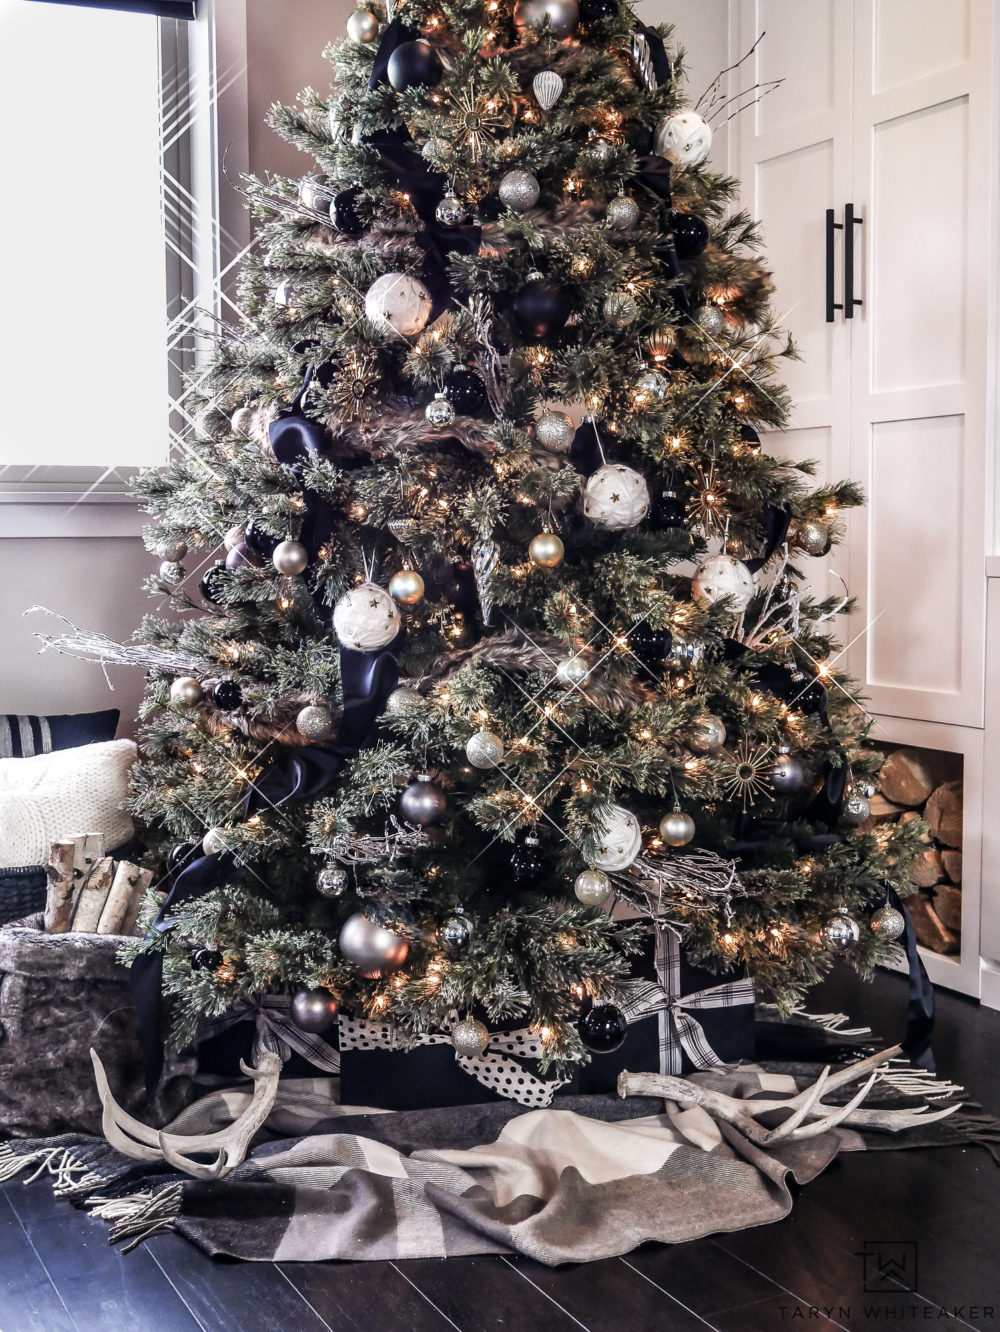 Chic and luxurious black and white Christmas tree